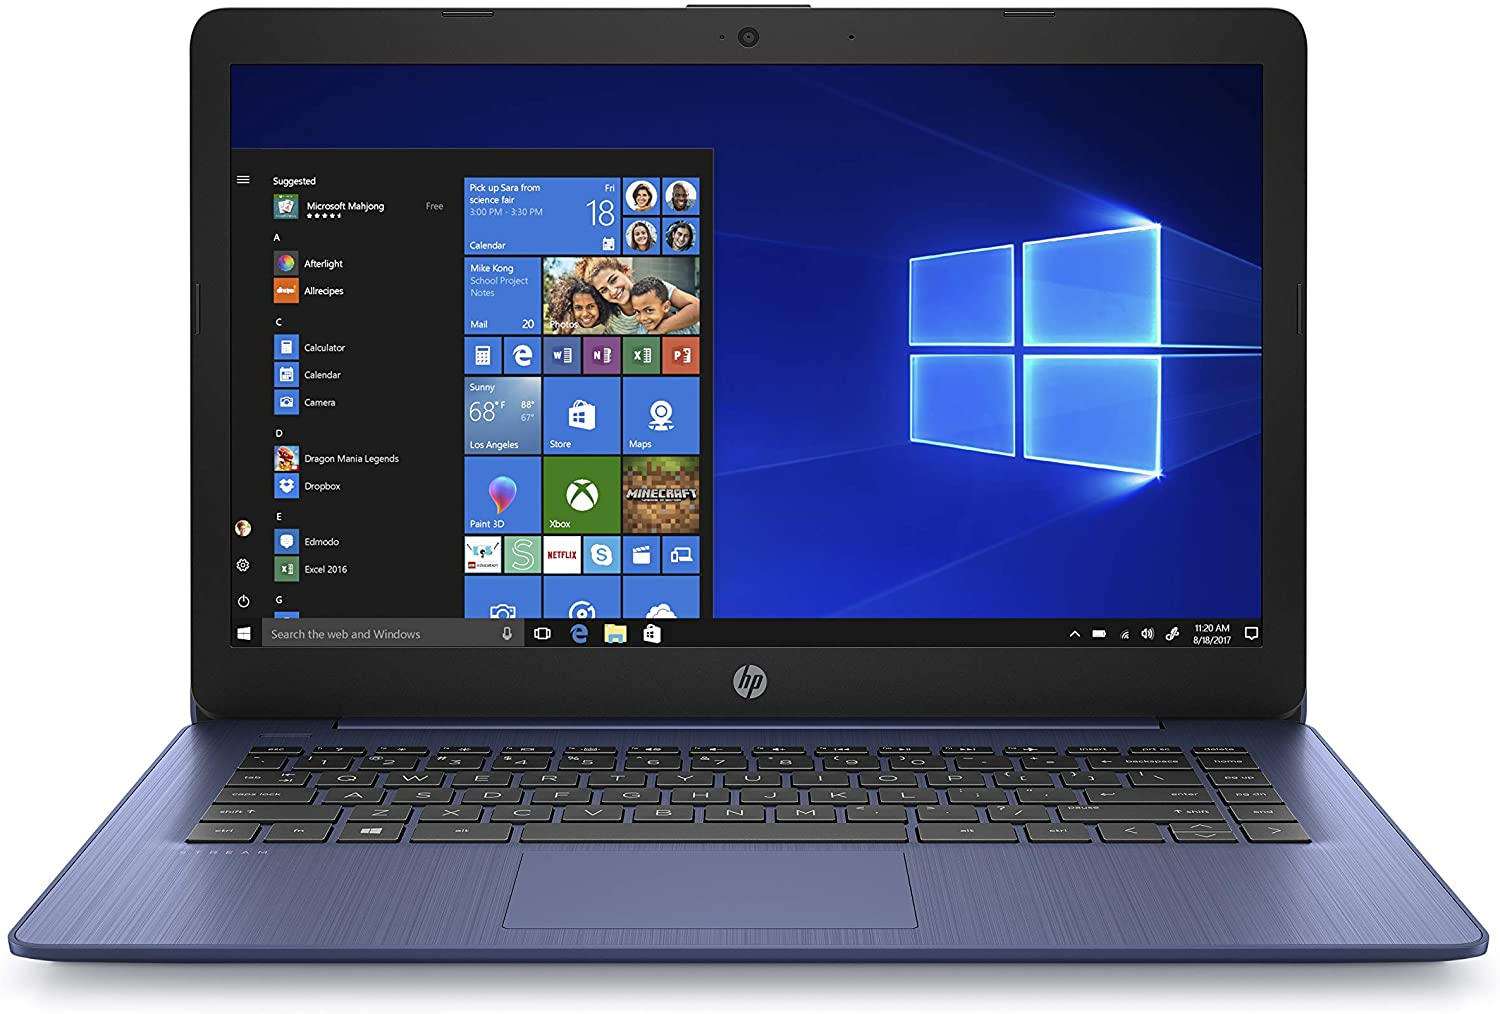 HP Stream 14-inch Laptop, Intel Celeron N4000, 4 GB RAM, 32 GB eMMC, Windows 10 Home in S Mode with Office 365 Personal for 1 Year (14-cb181nr, Royal Blue), Model Number: 9MV82UA#ABA